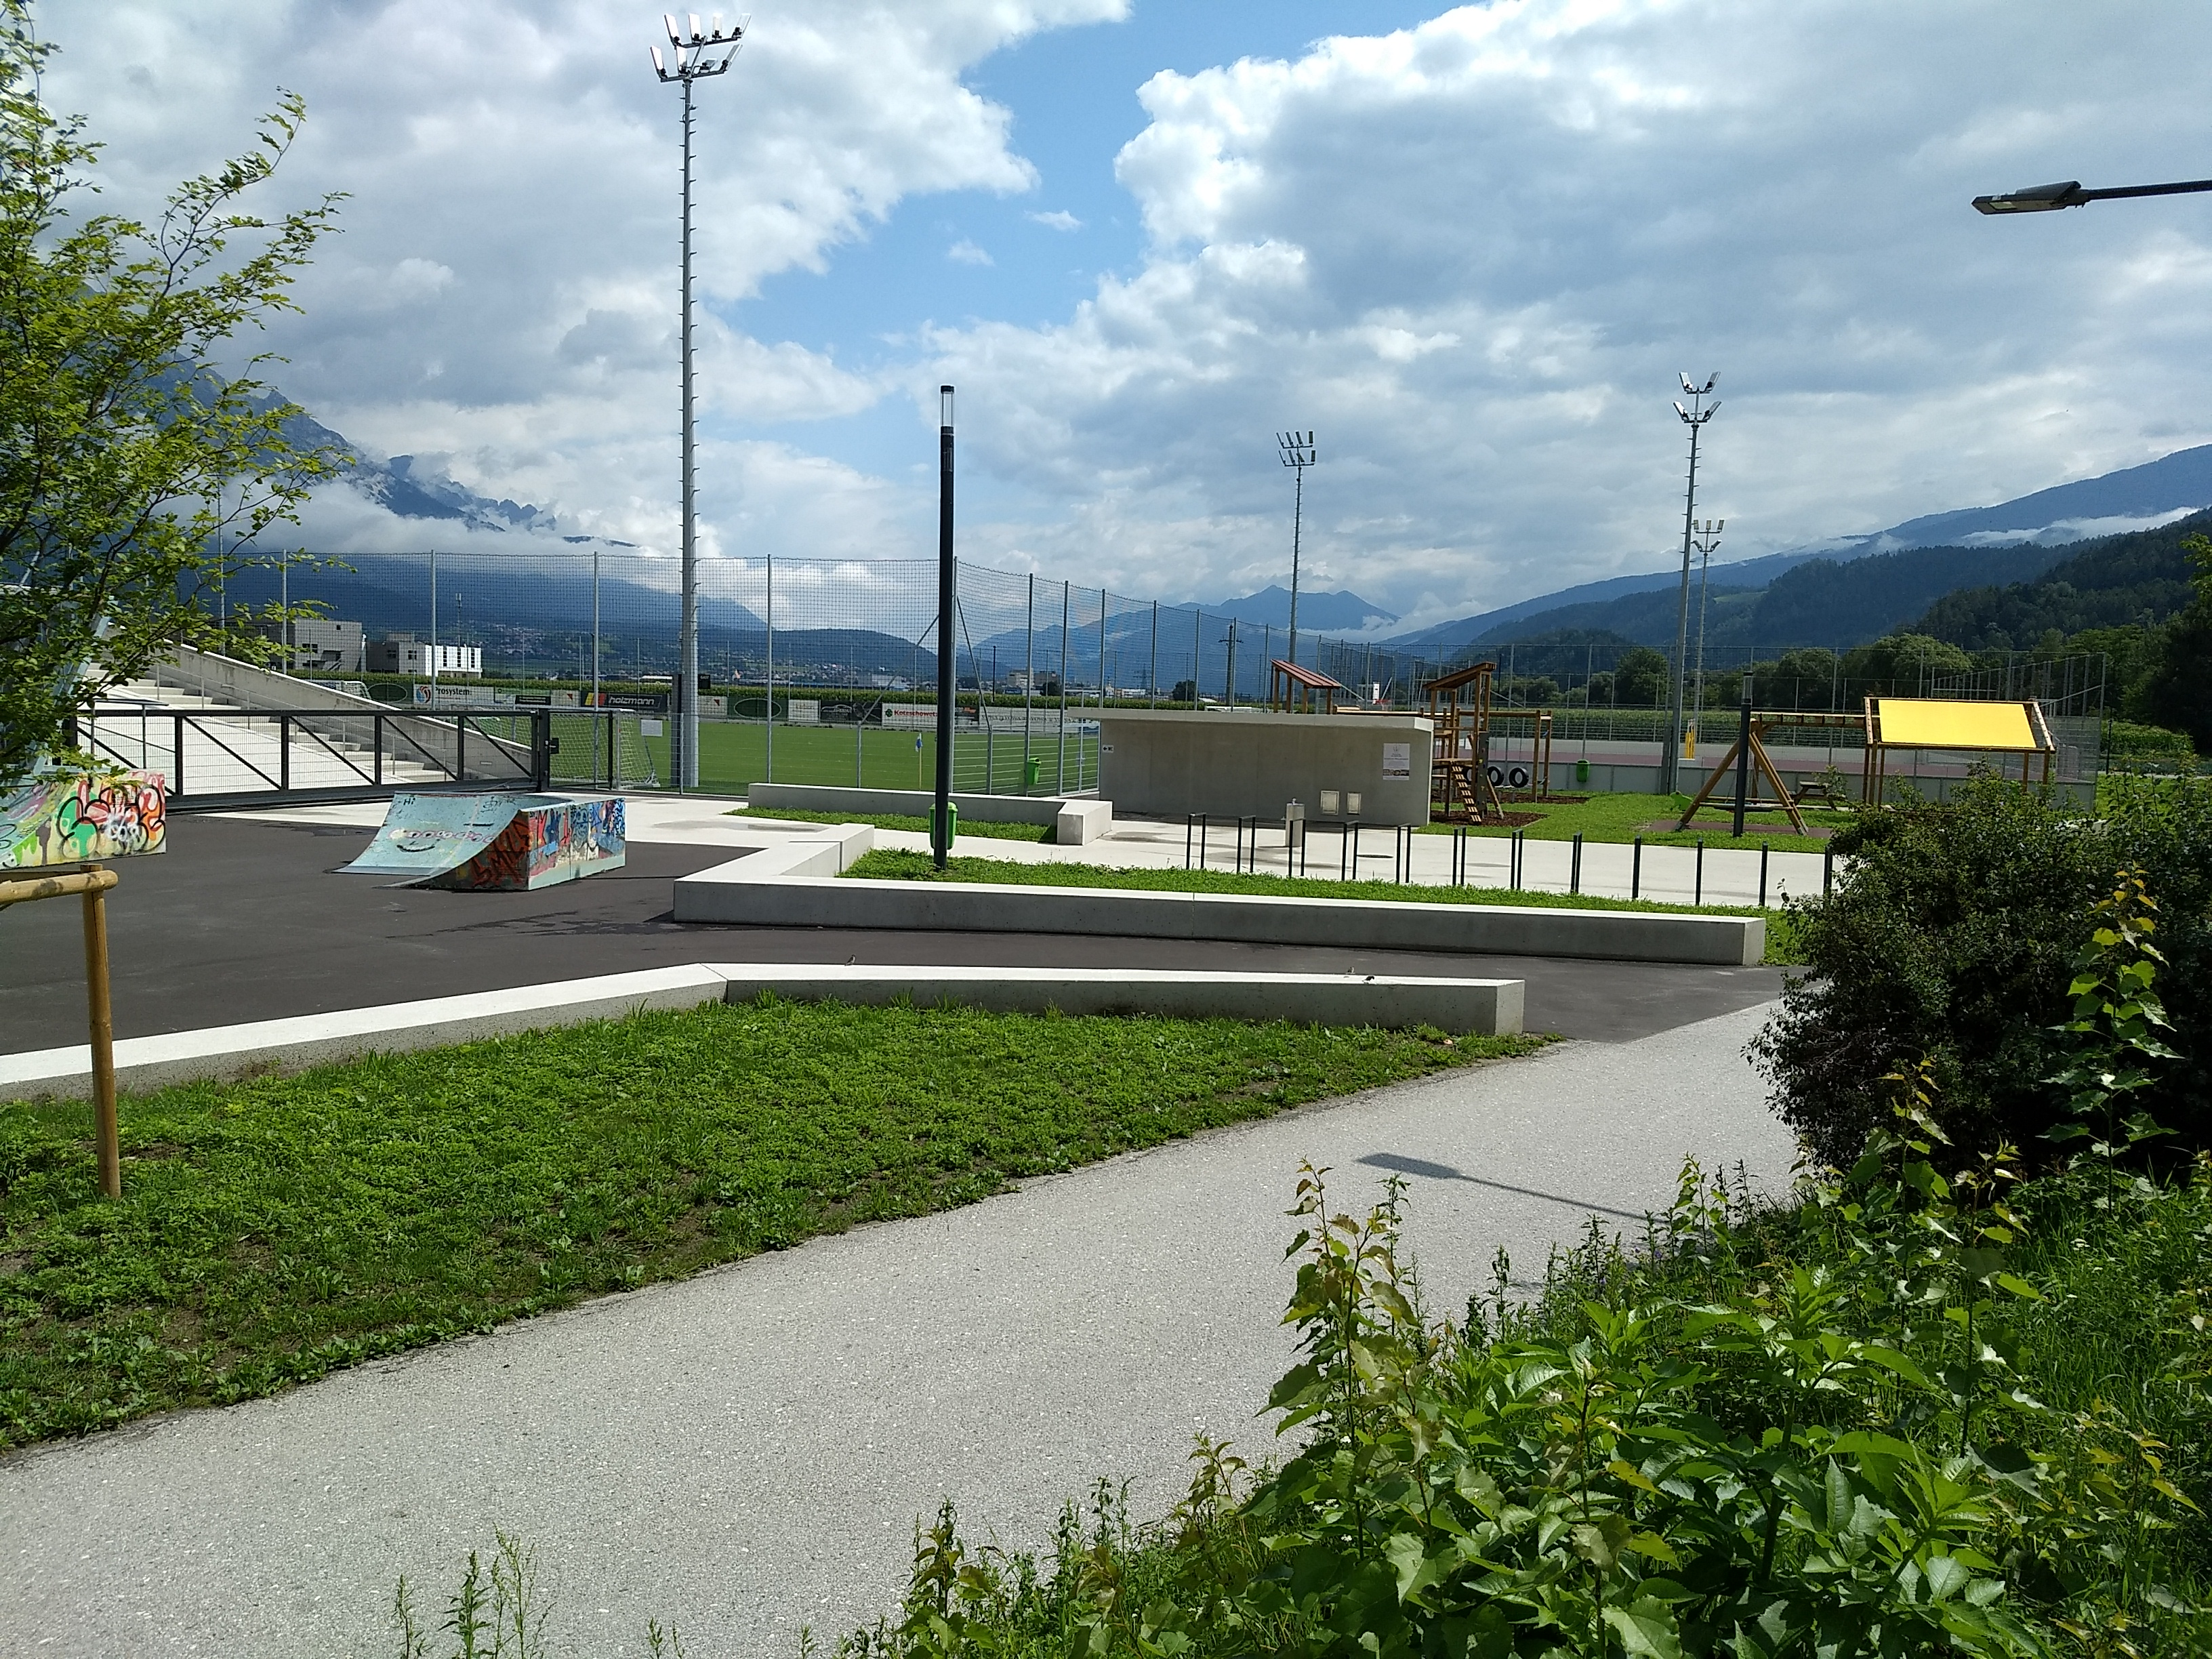 A playground with cycle trail, skateboard jumps, beach volleyball court and climbing gym.  The background is foggy mountains and a bright sky with clouds.